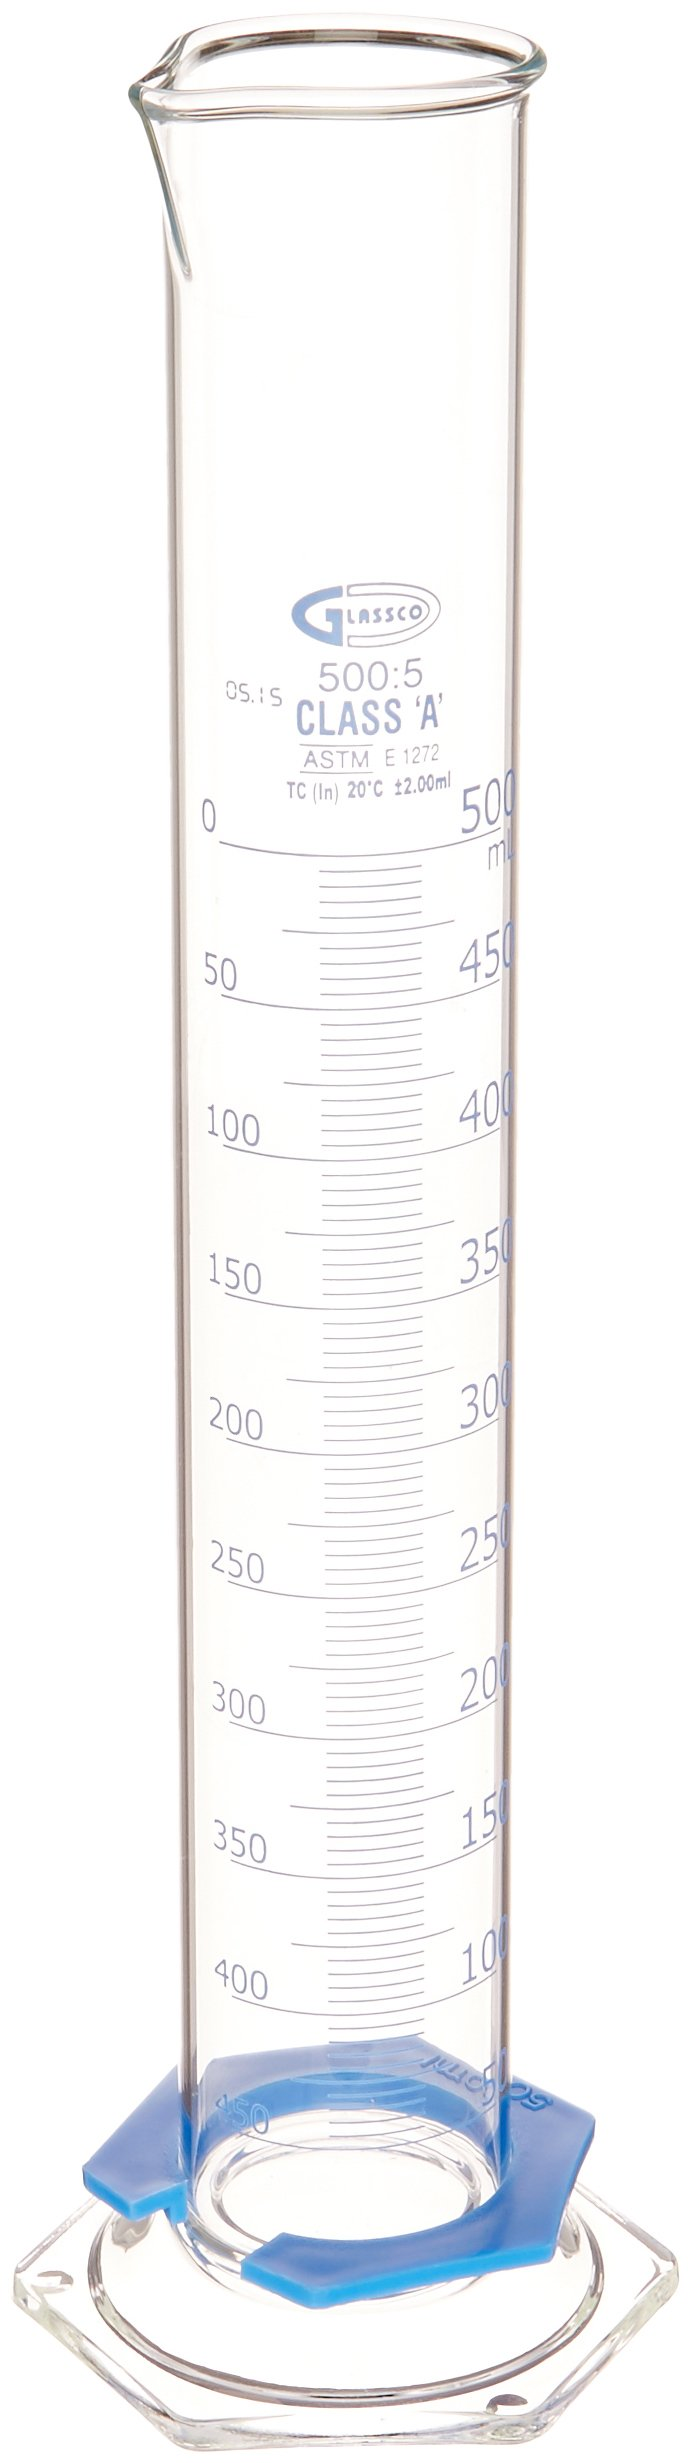 United Scientific CY3021-500 Borosilicate Glass Graduated Cylinder with Hexagonal Base and Bumper Guard, Single Scale, Class A, Batch Certified, 500ml Capacity